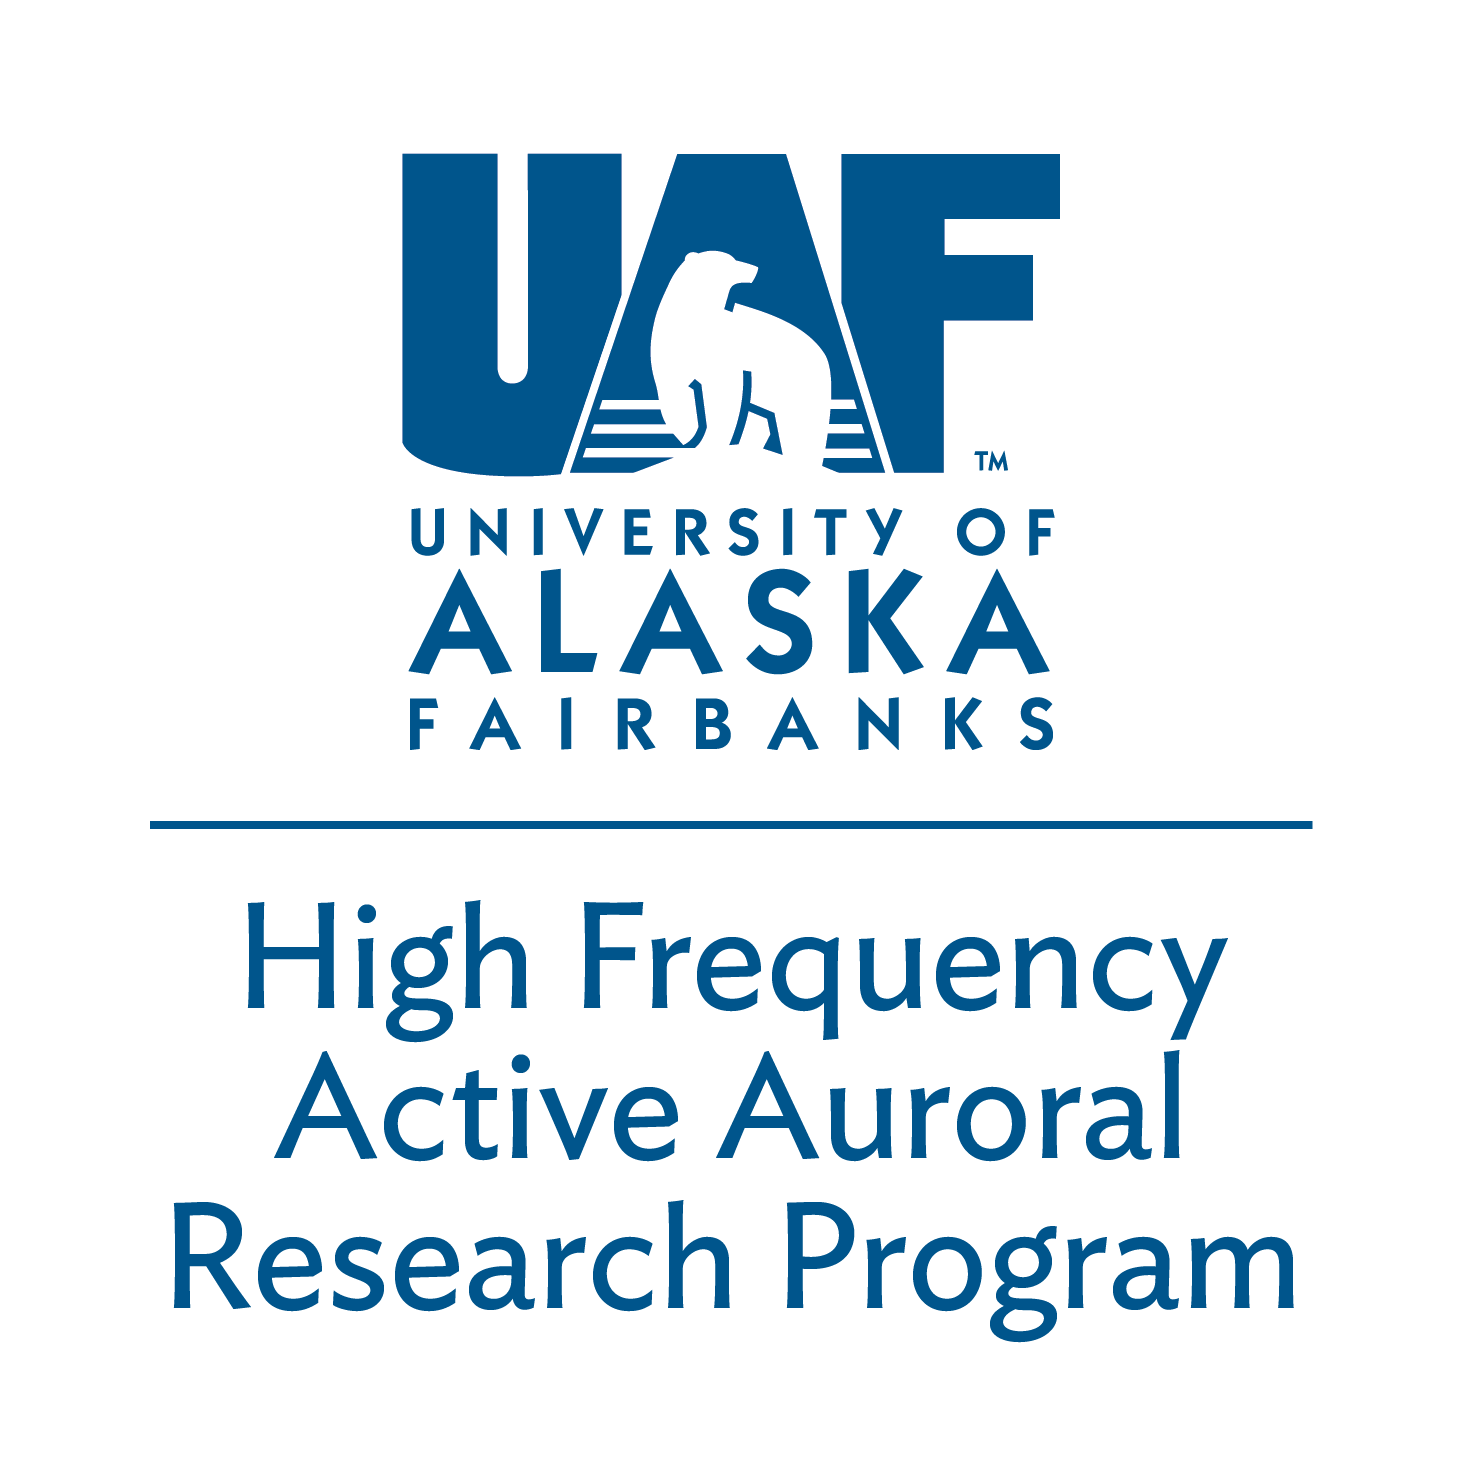 High-frequency Active Auroral Research Program (HAARP